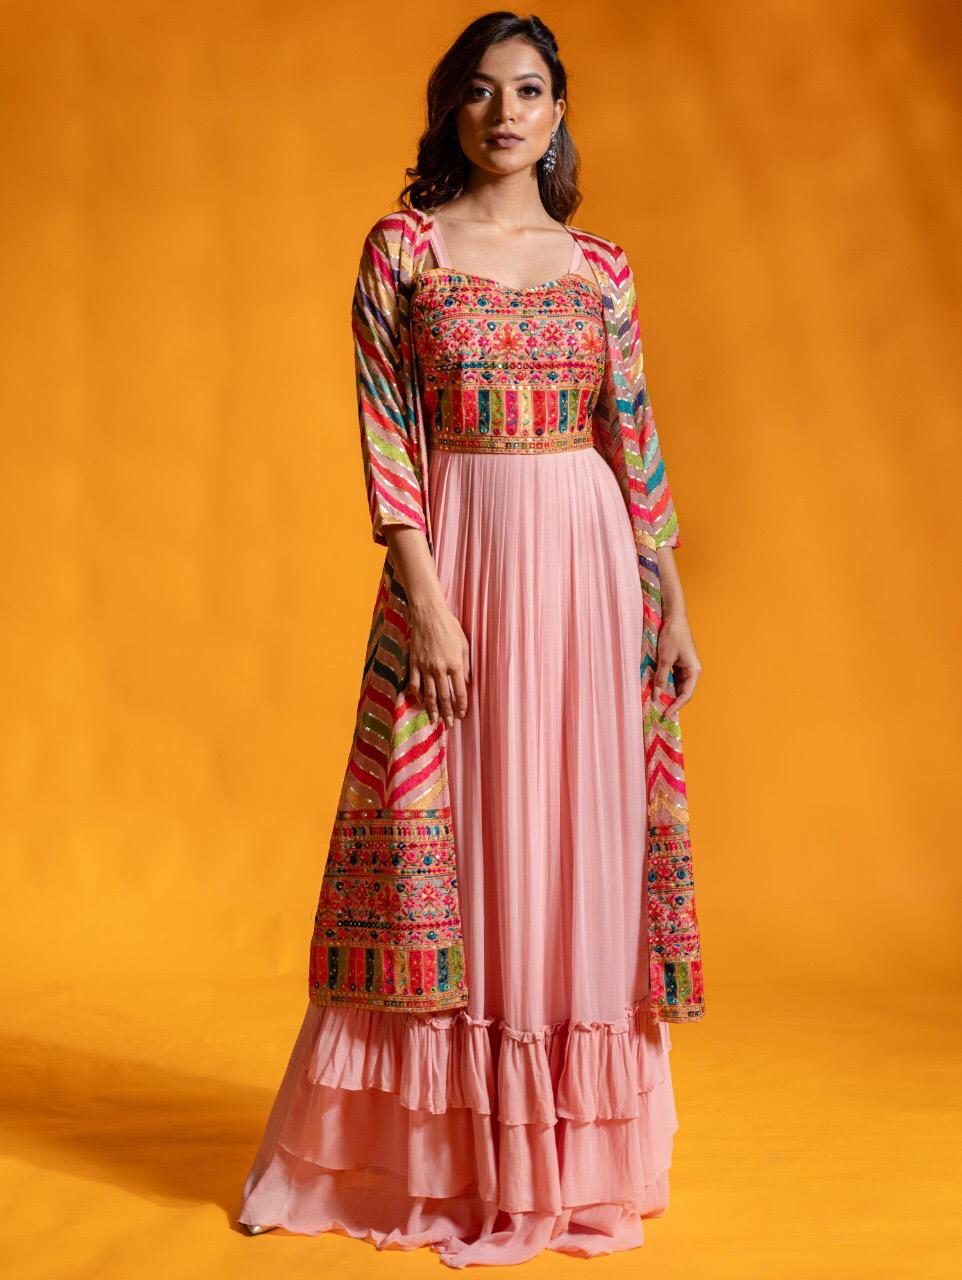 Pink Digital Print Designer Gown With Jacket | Designer Gown For Wedding